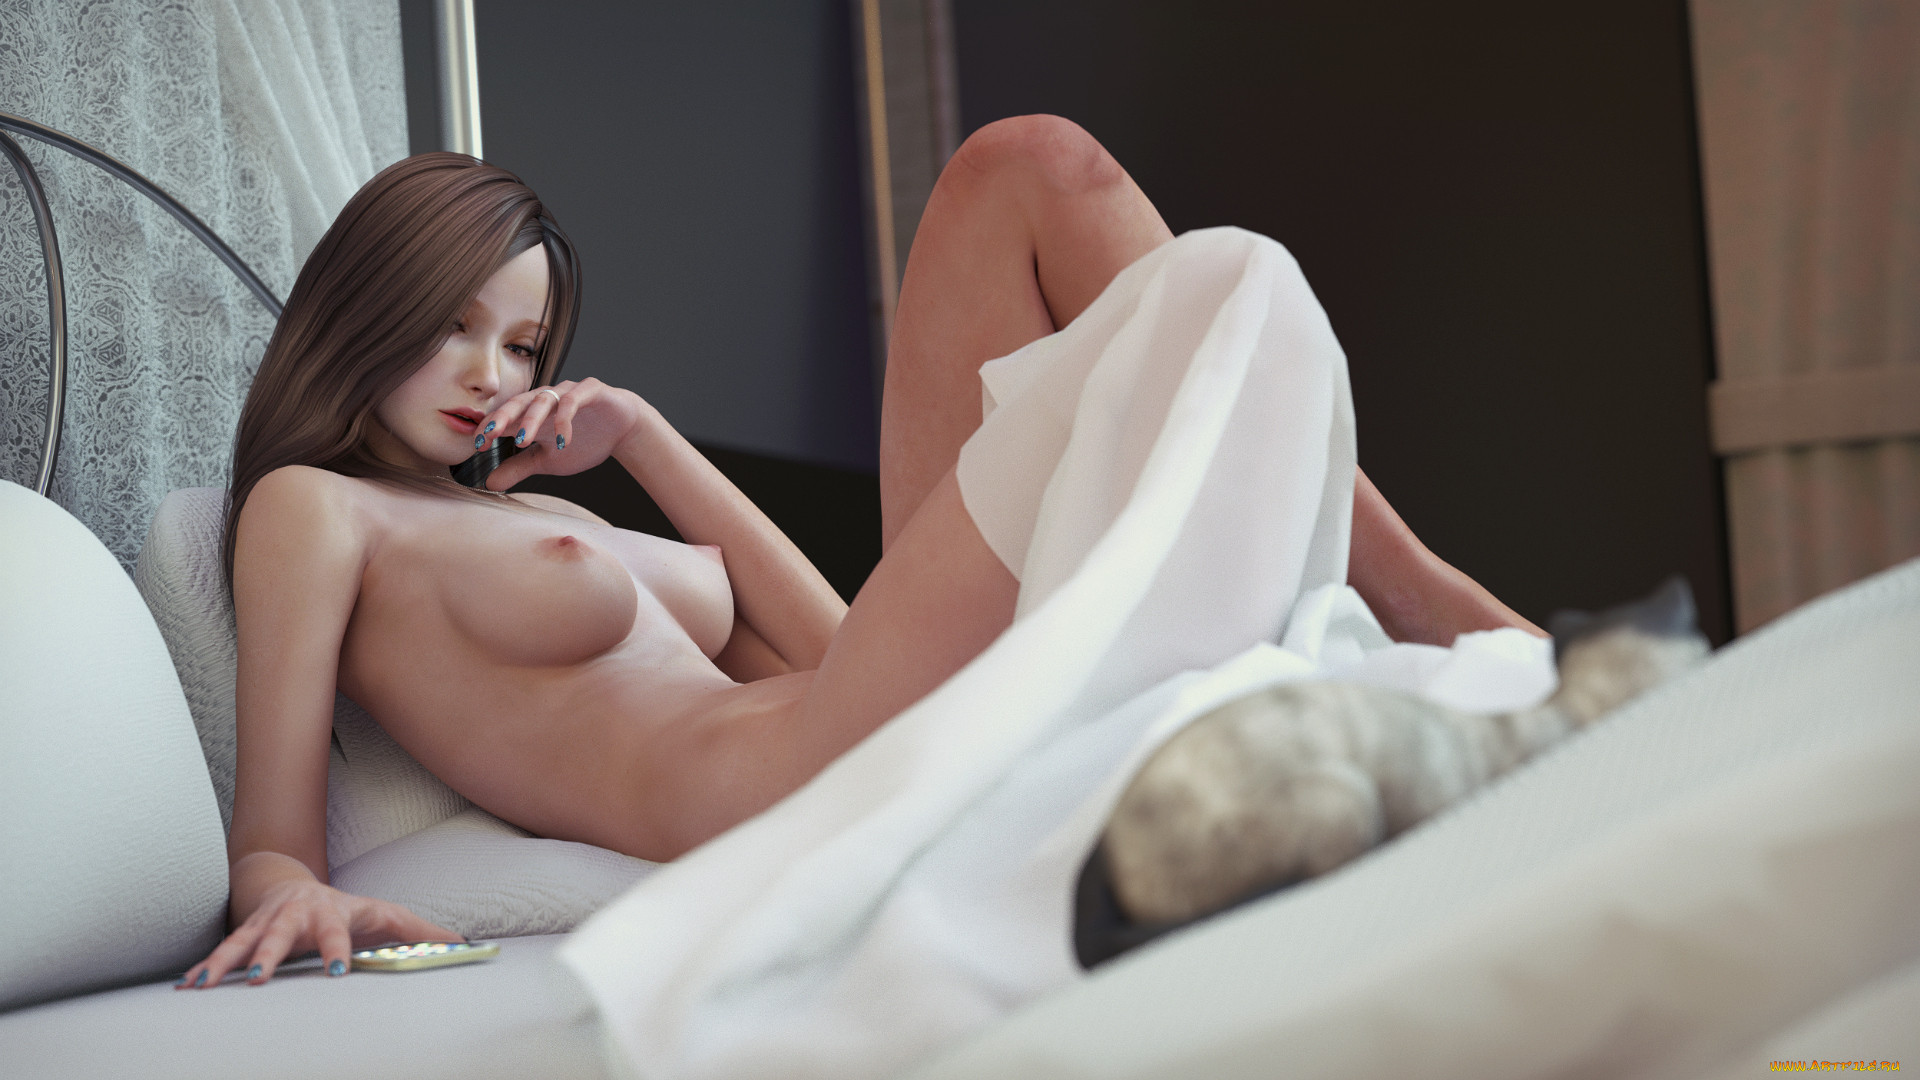 Adult 3dnude art sexy tube